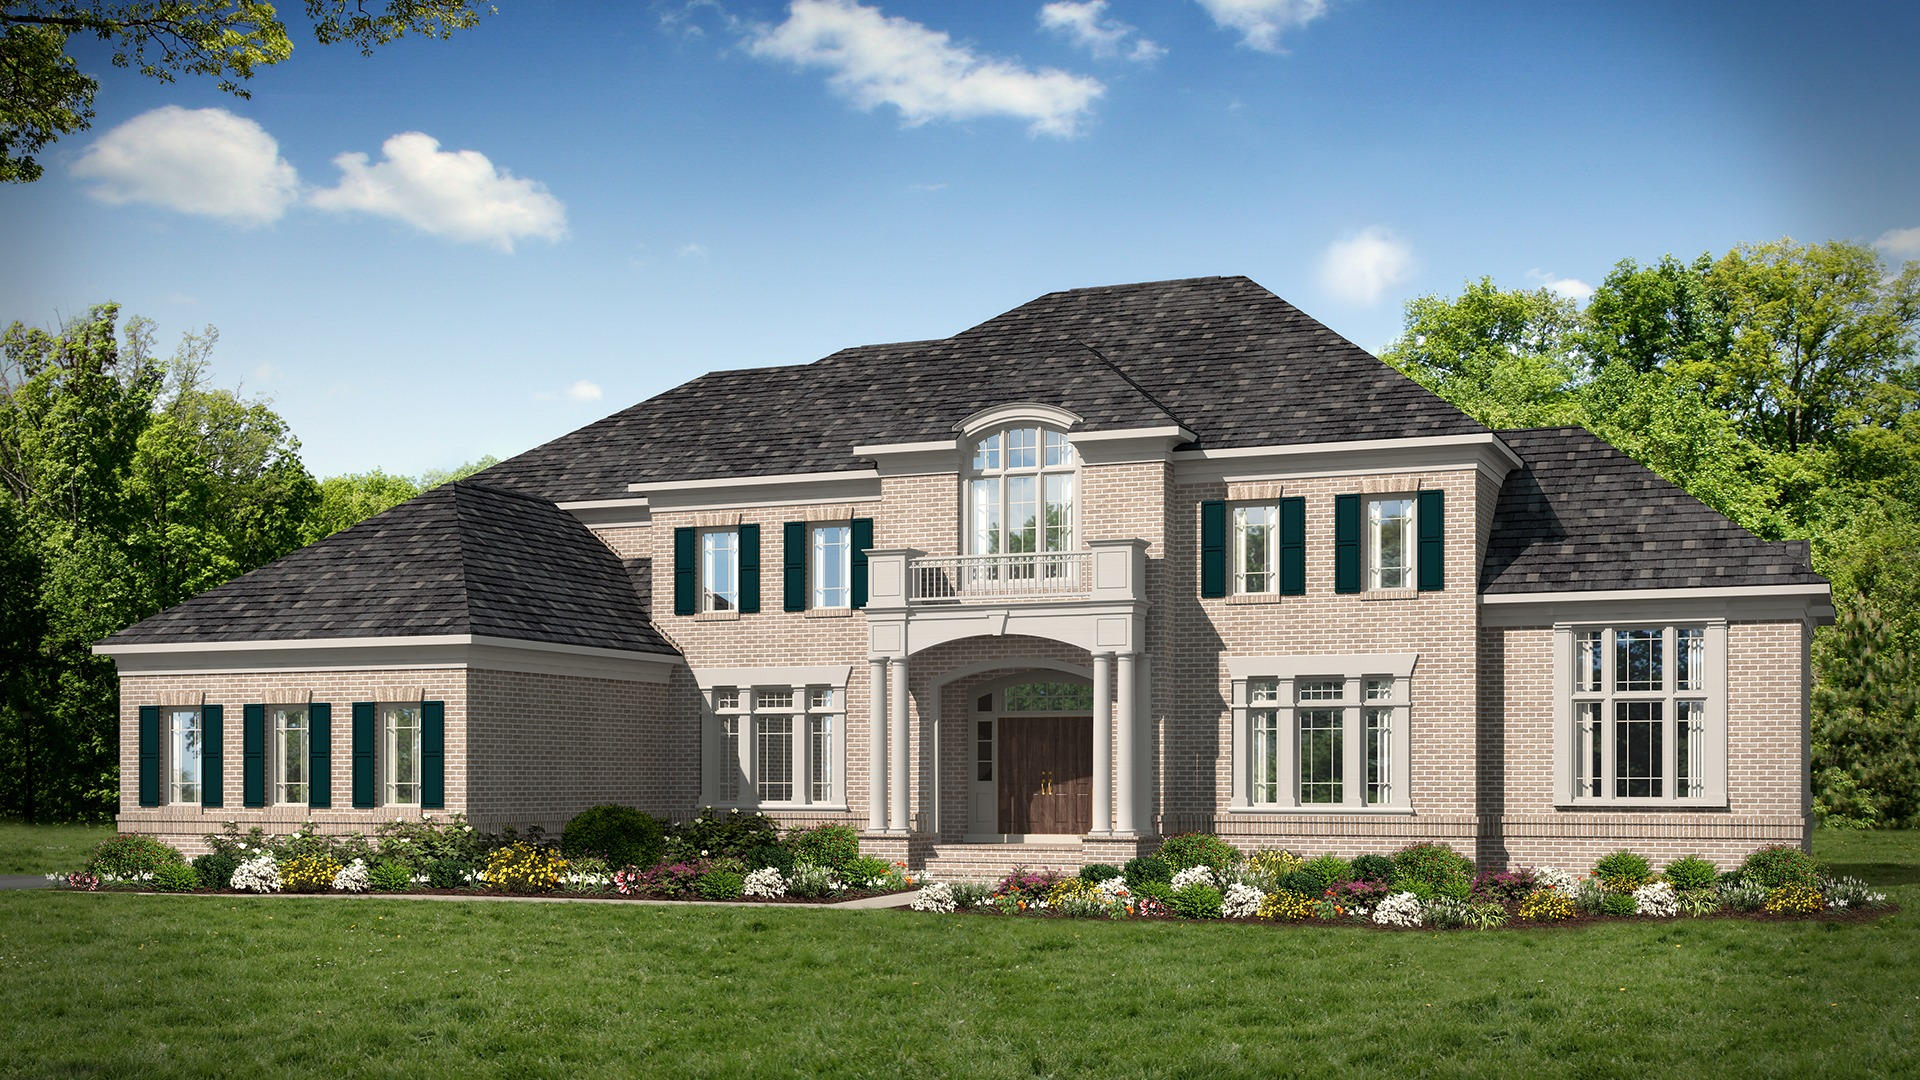 A rendering of a Winthrop Exterior (opt. Elev A) with a Conservatory in a blush brick.